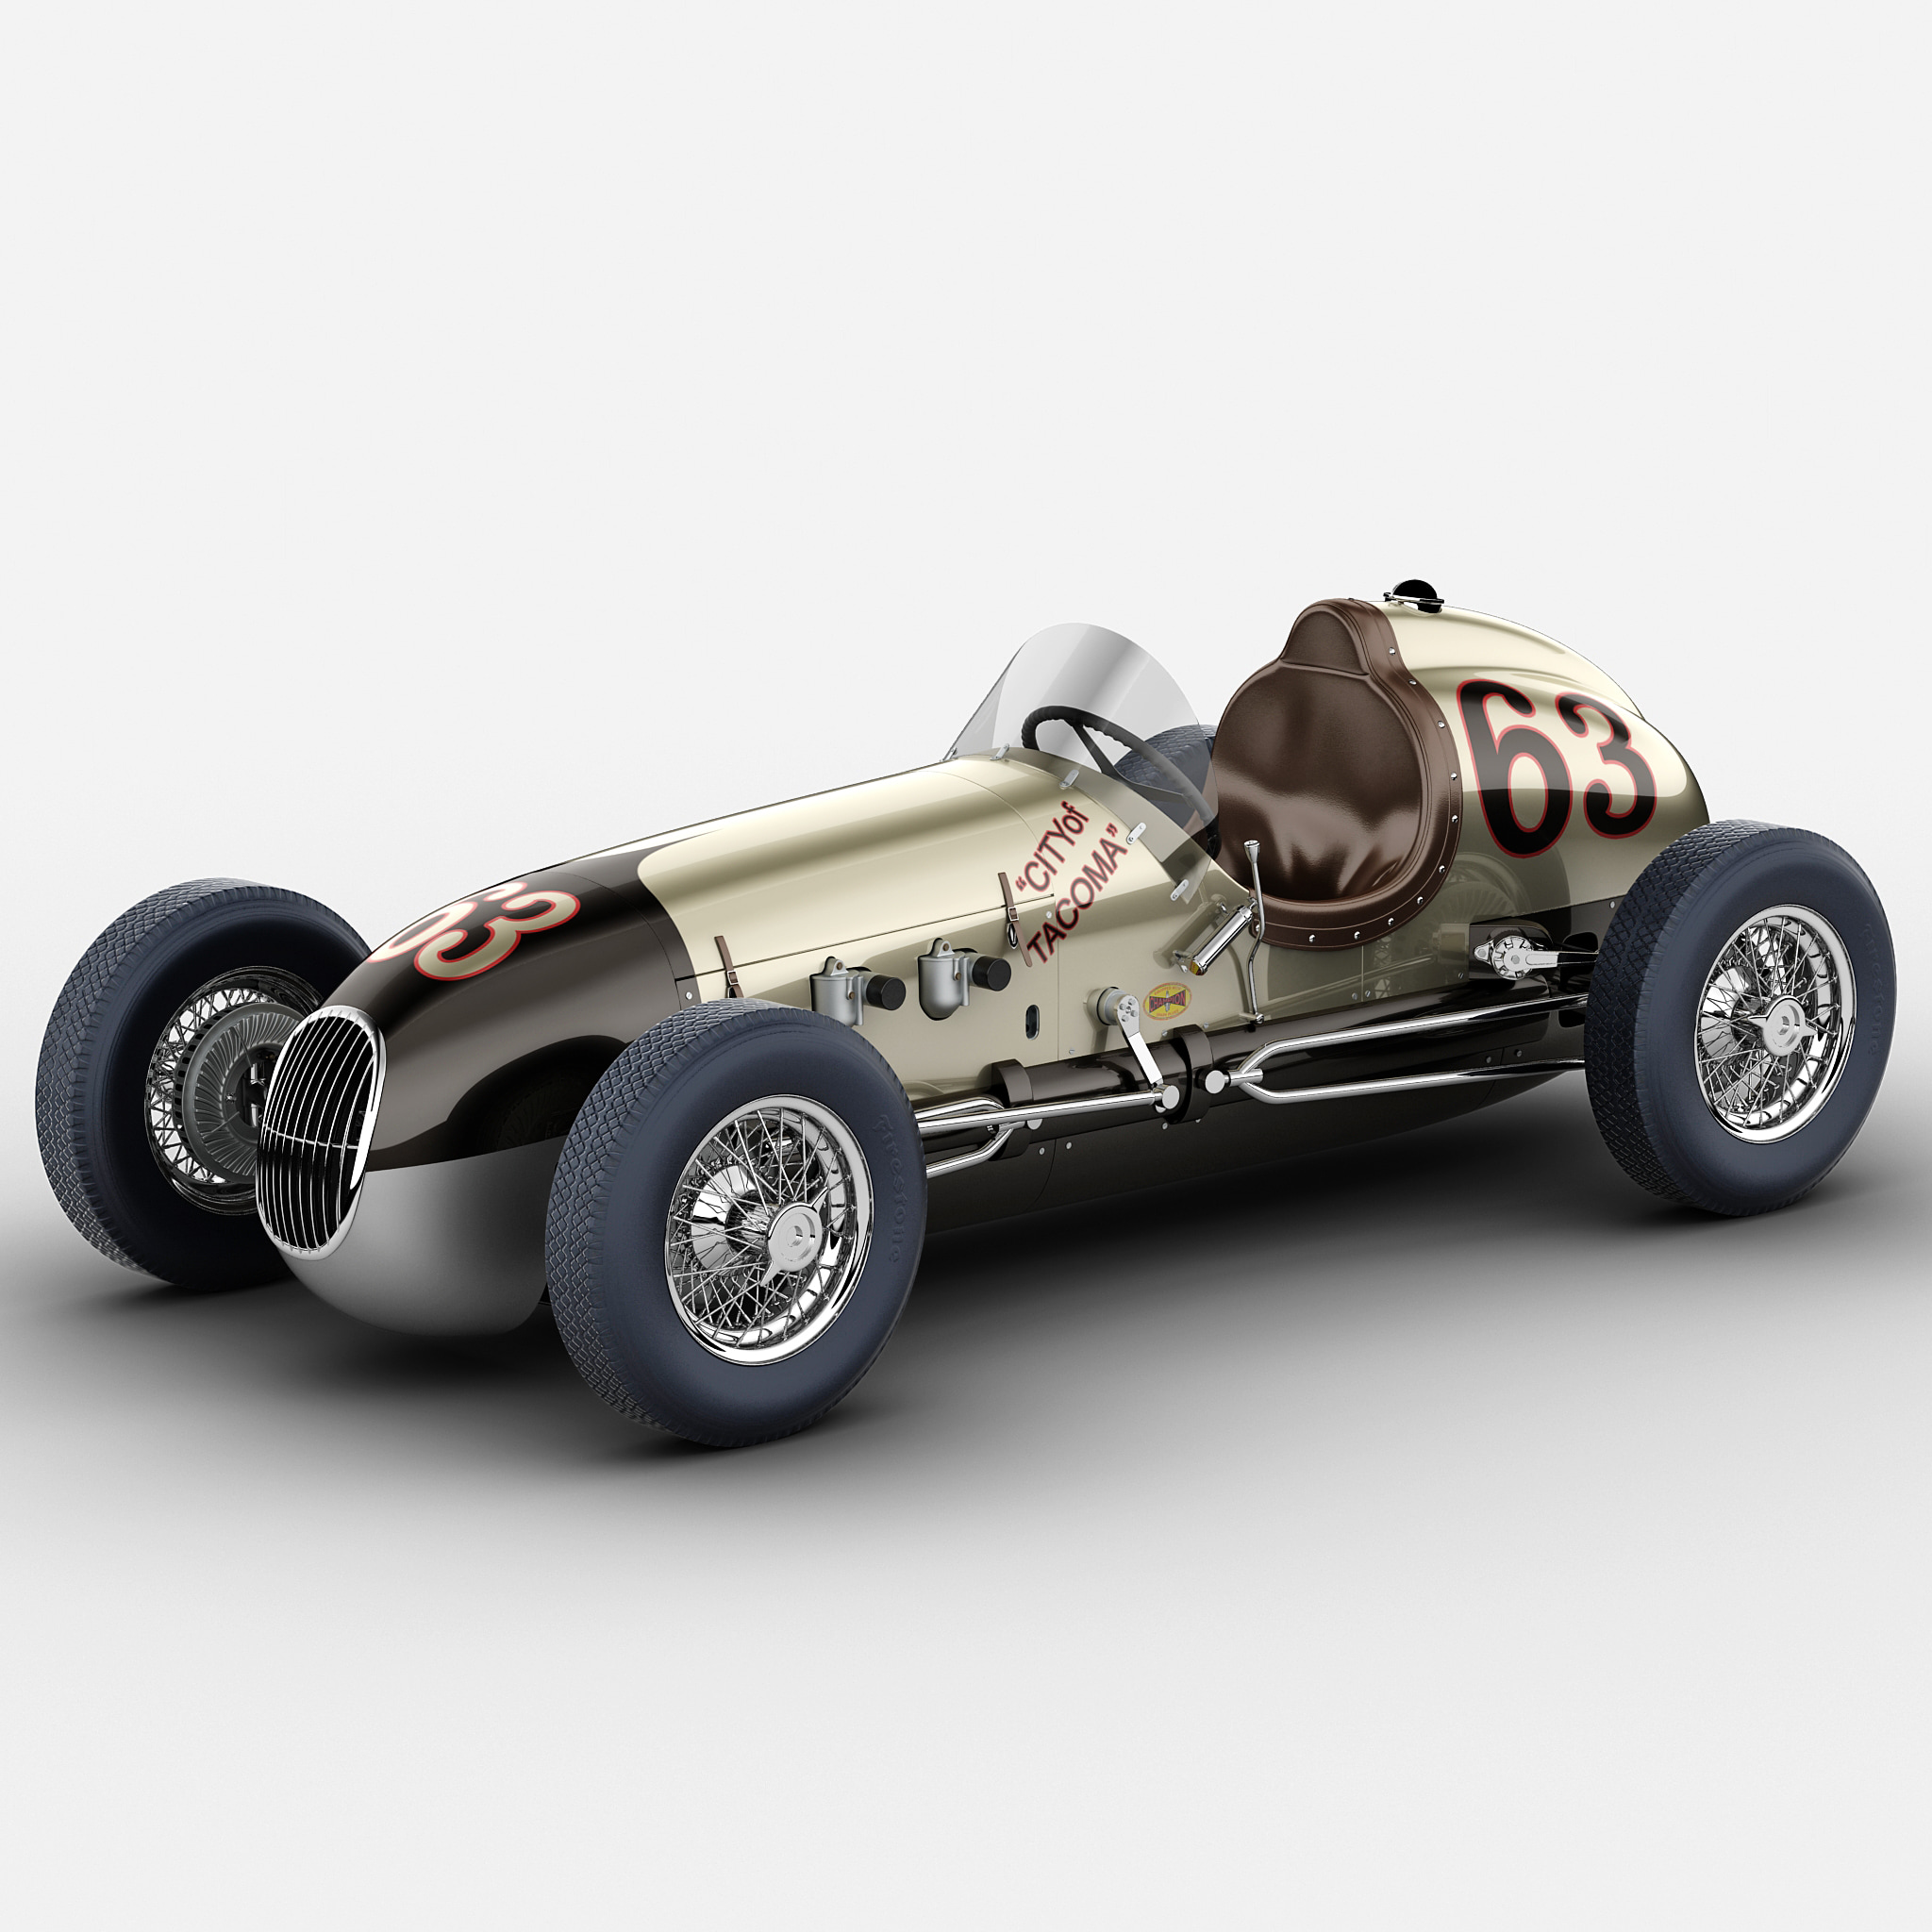 Kurtis Kraft 2000 Vintage Race Car_2.jpg